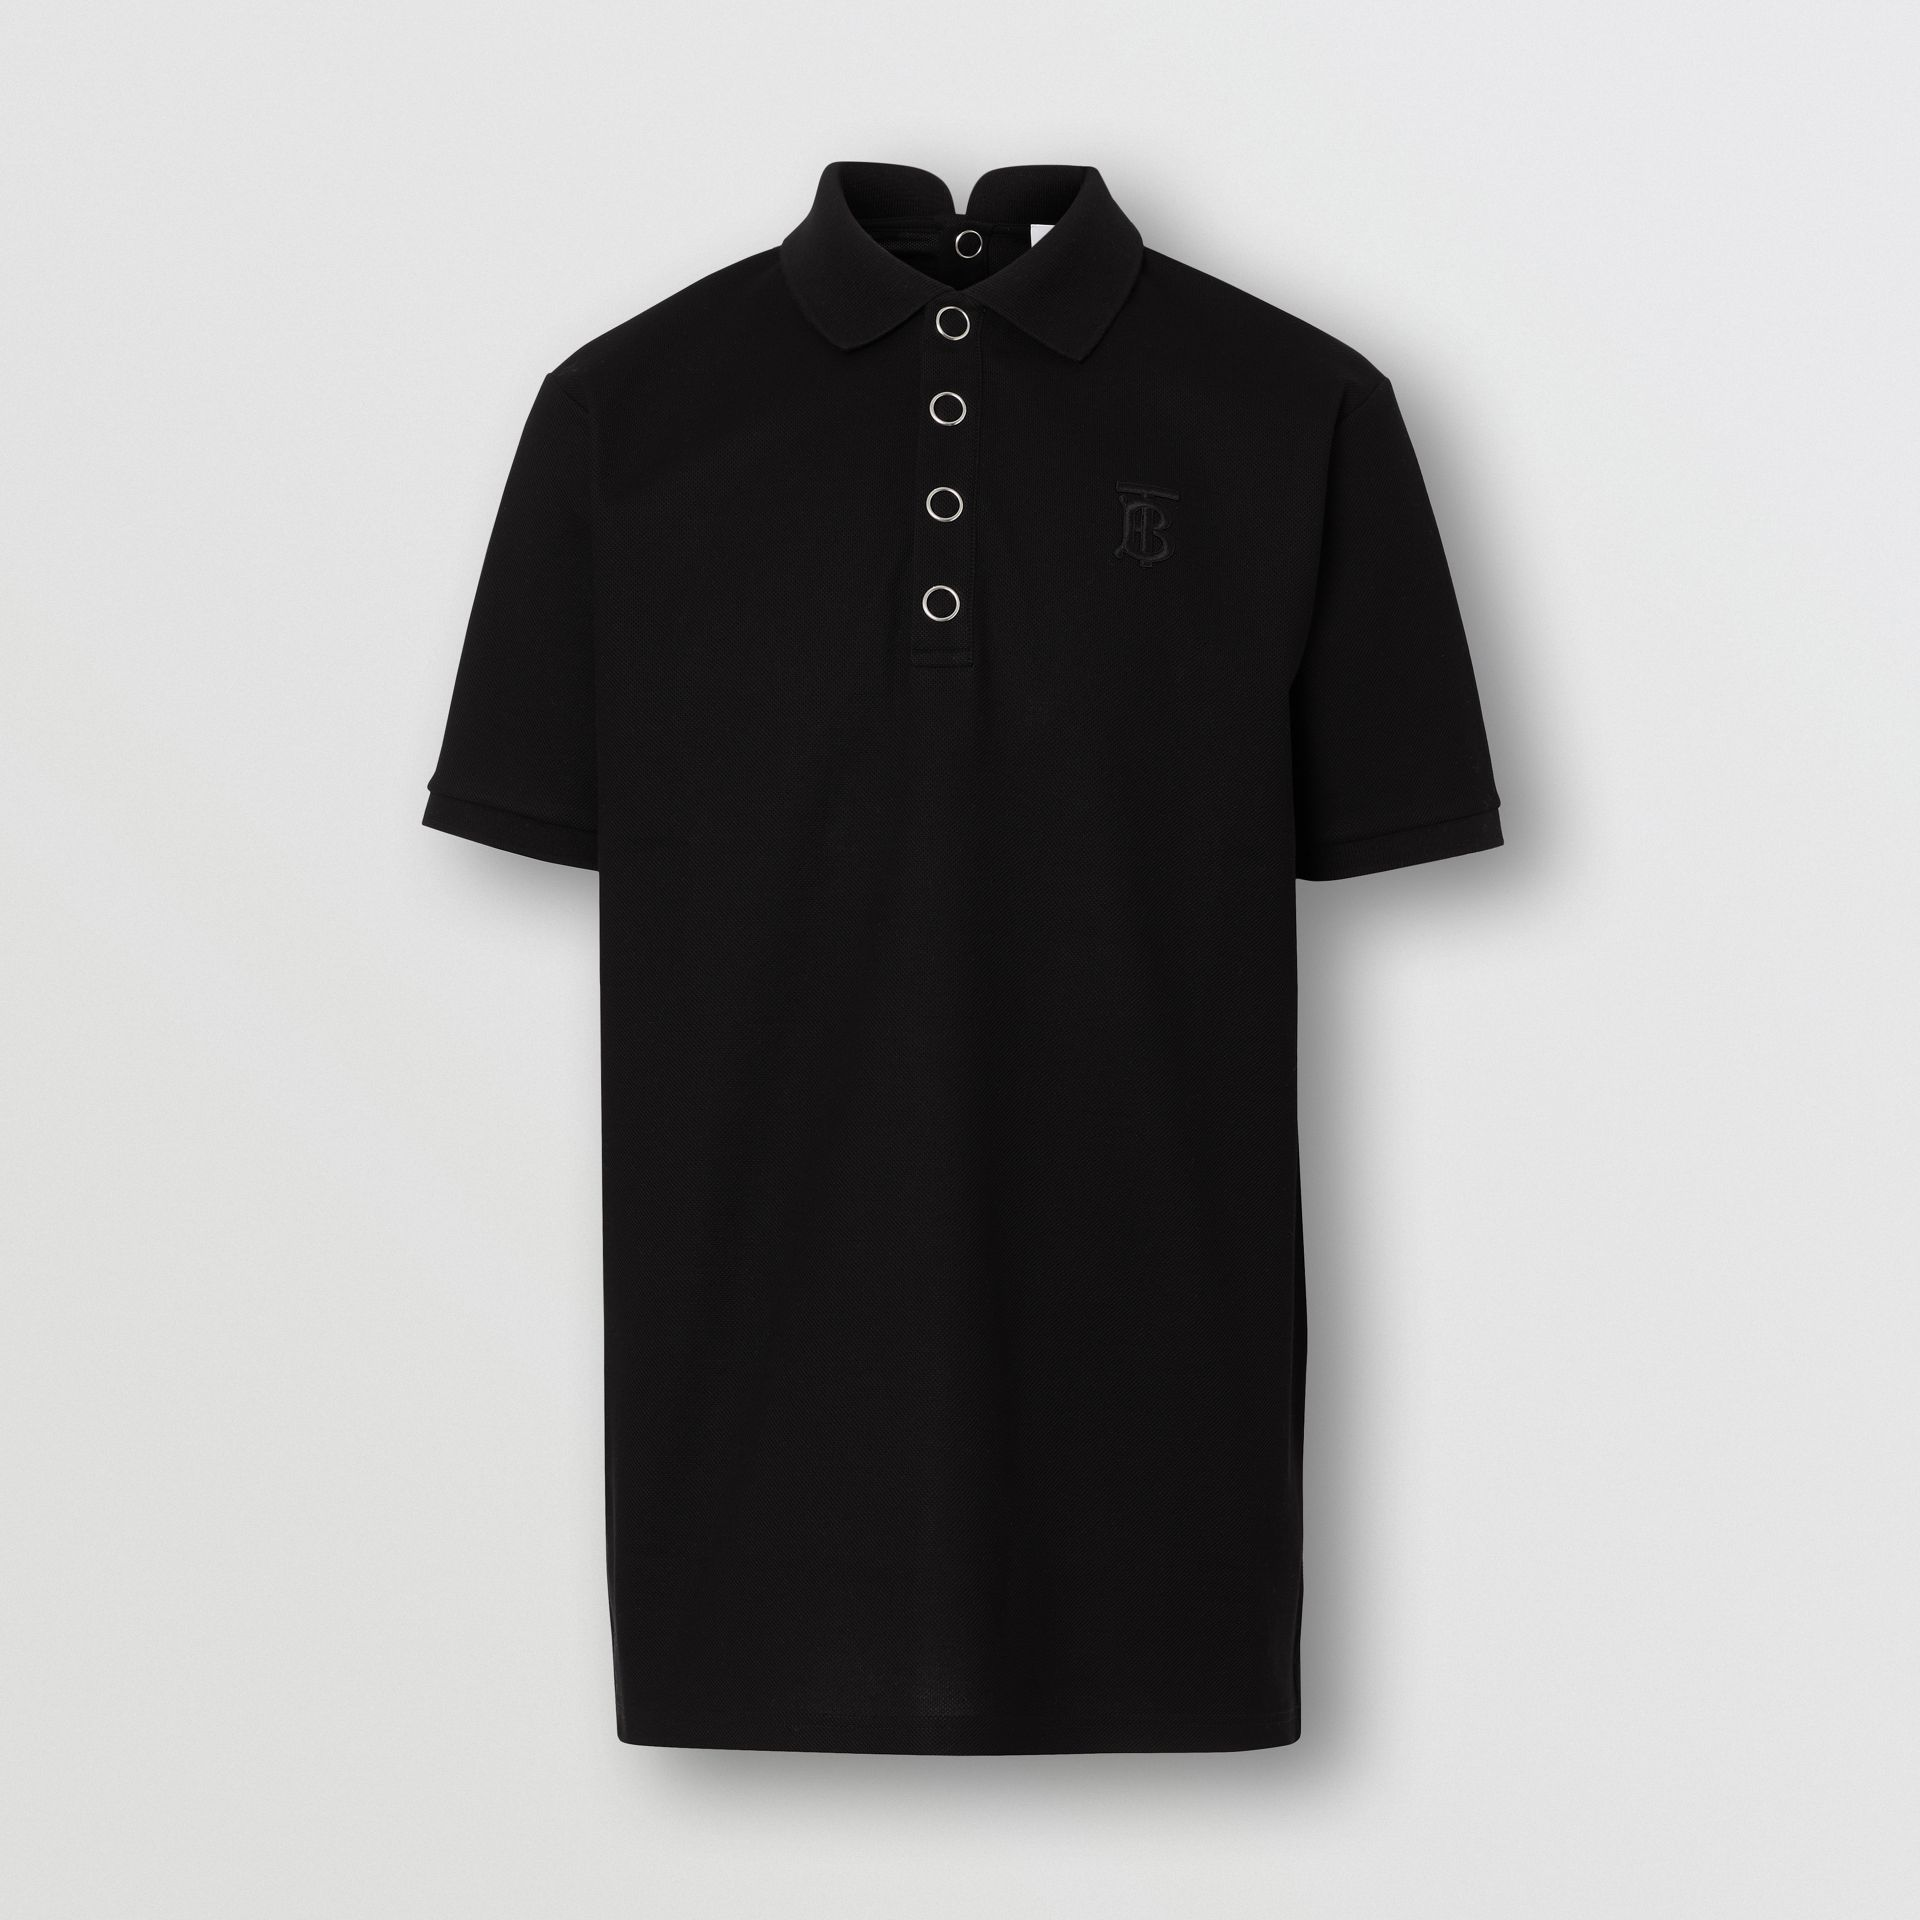 Monogram Motif Cotton Piqué Polo Shirt in Black | Burberry - gallery image 3